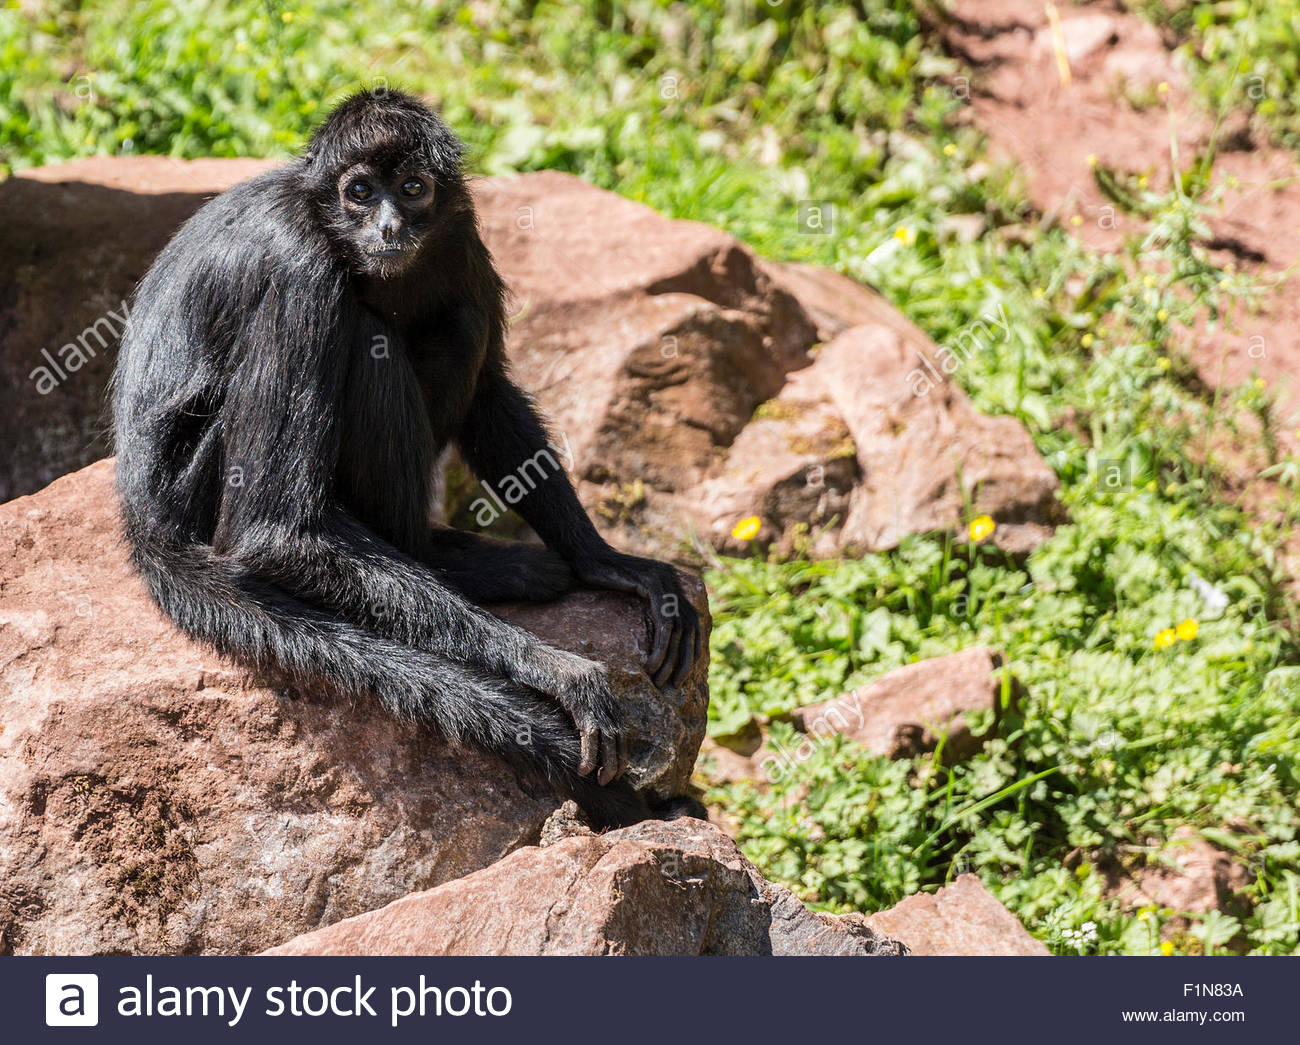 Columbian spider monkey looking very innocent - Stock Image